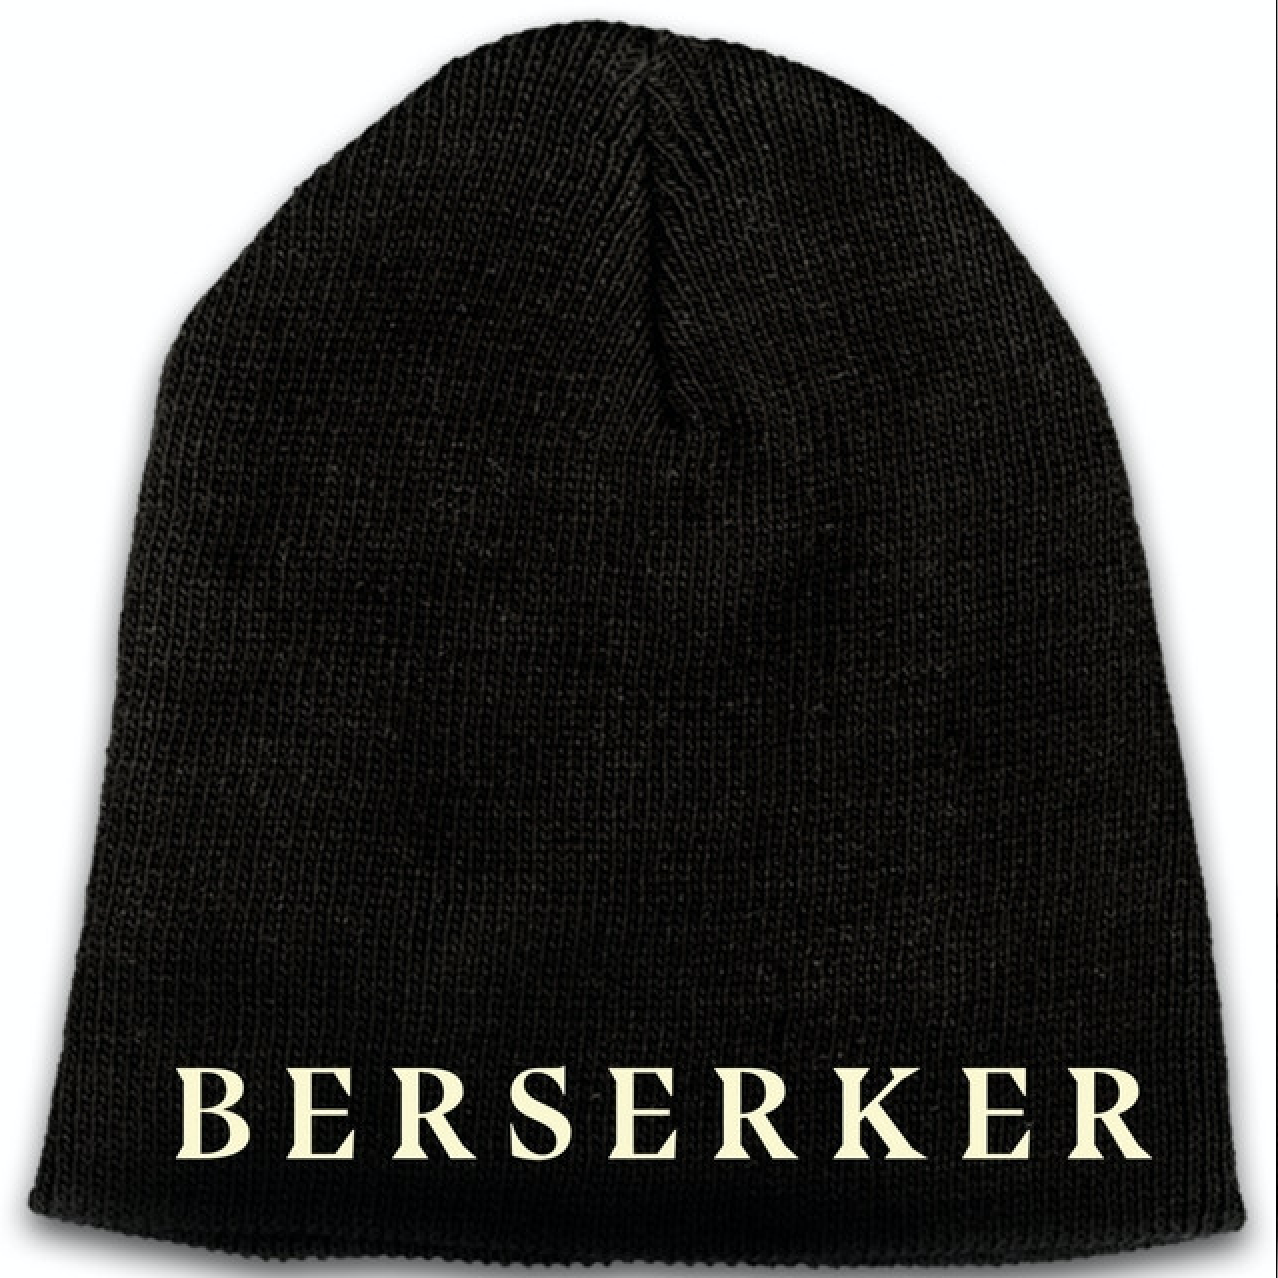 Berserker (Two-sided)